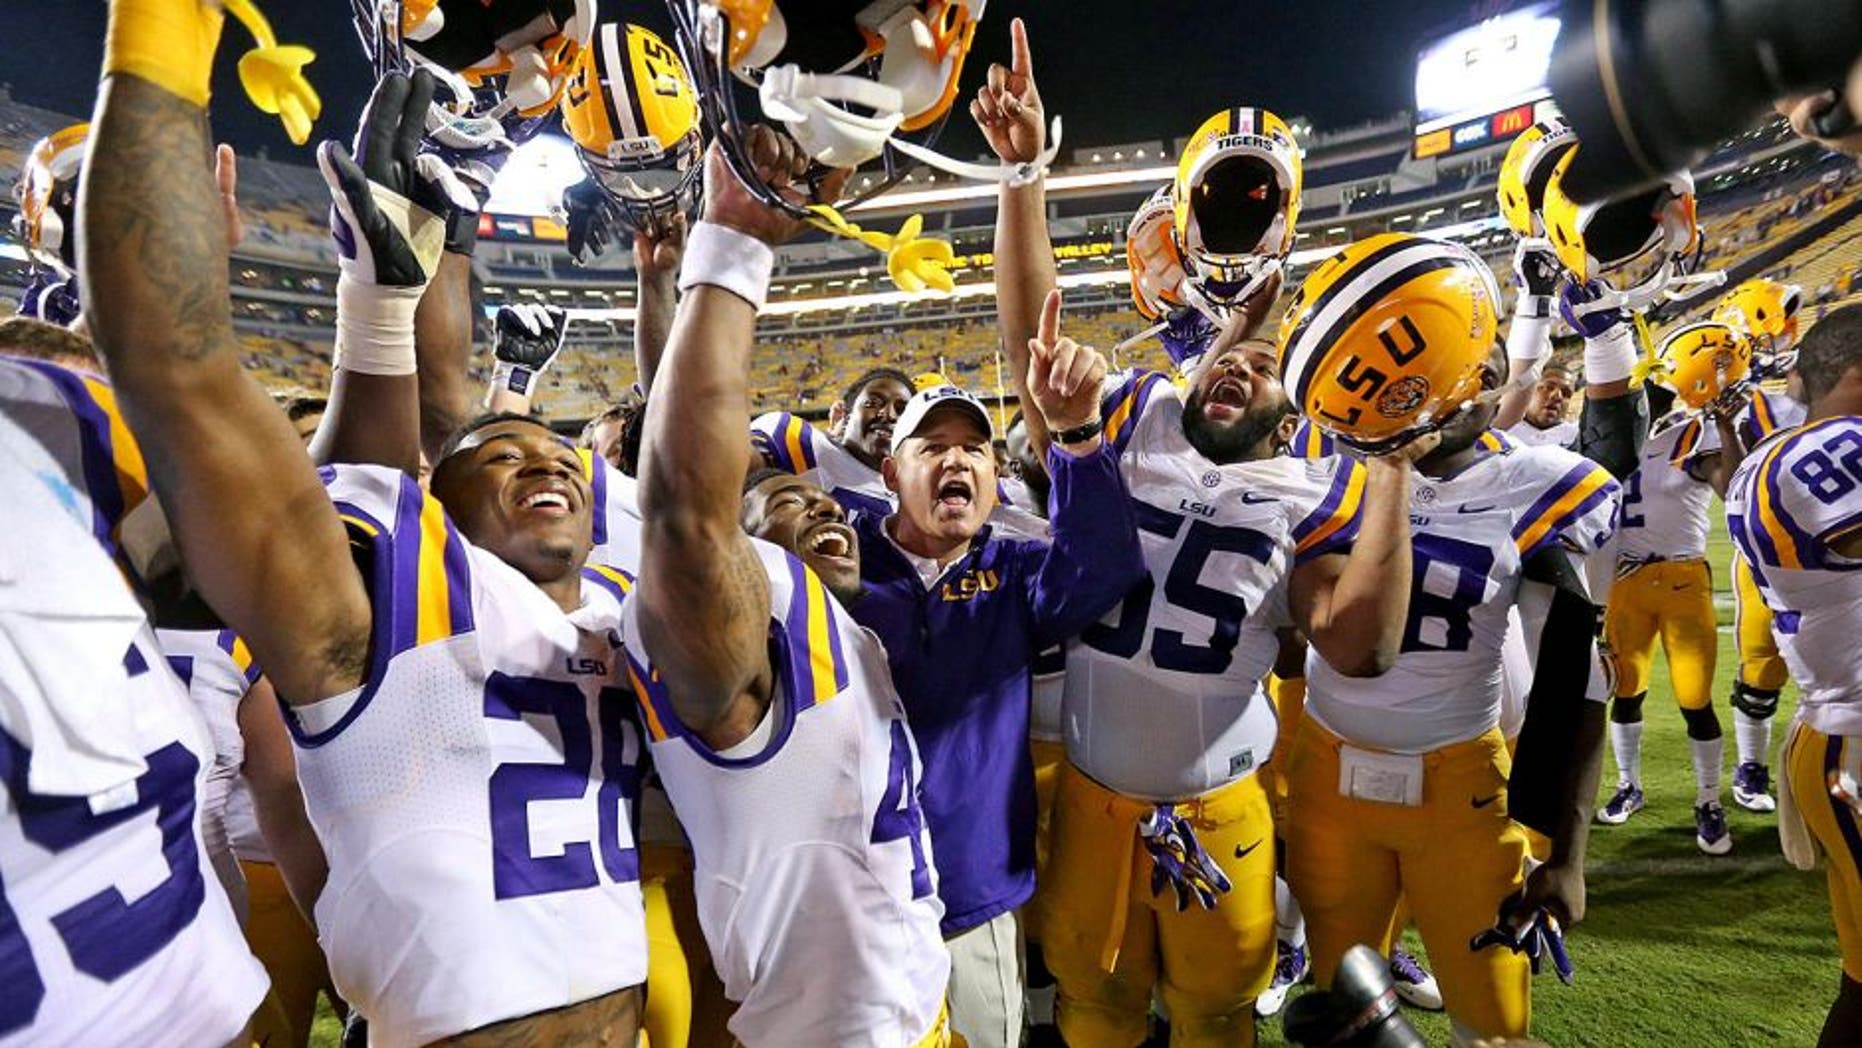 Oct 18, 2014; Baton Rouge, LA, USA; LSU Tigers head coach Les Miles and the Tigers celebrate their 41-3 victory against the Kentucky Wildcats at Tiger Stadium. Mandatory Credit: Crystal LoGiudice-USA TODAY Sports